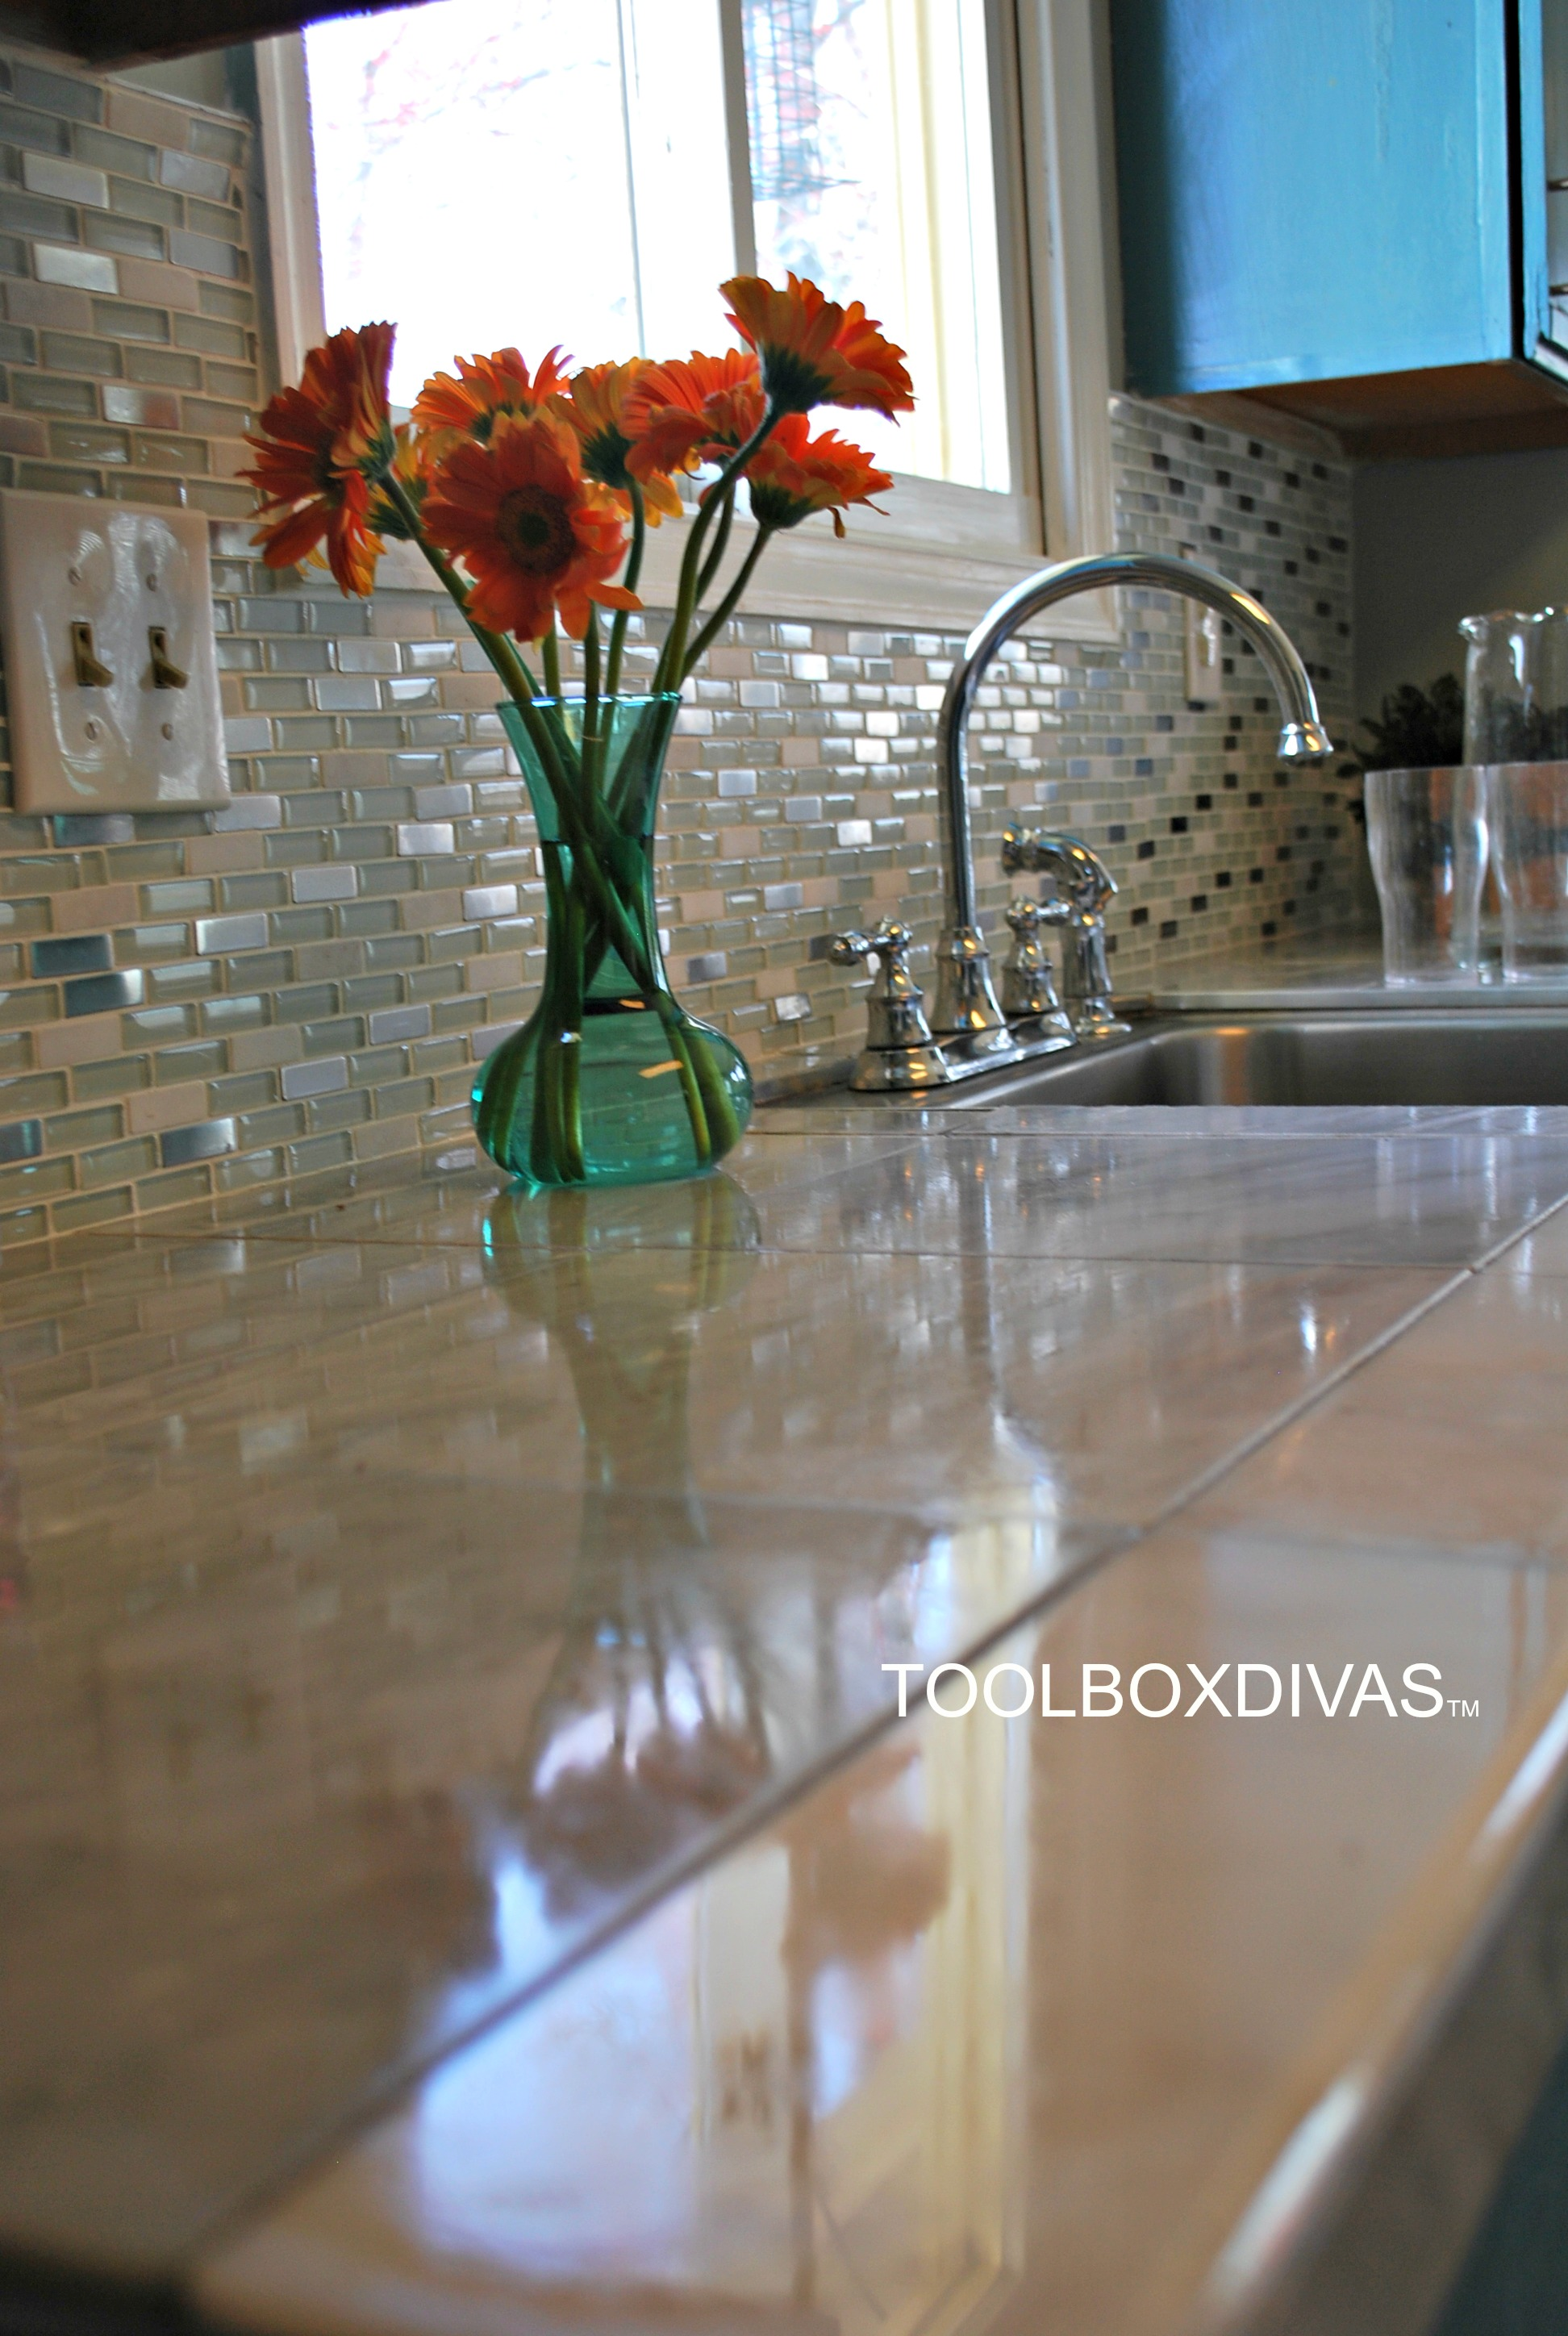 Marble countertop hack how to tile over laminate countertops marble countertop hack how to tile over laminate countertops toolbox divas dailygadgetfo Images